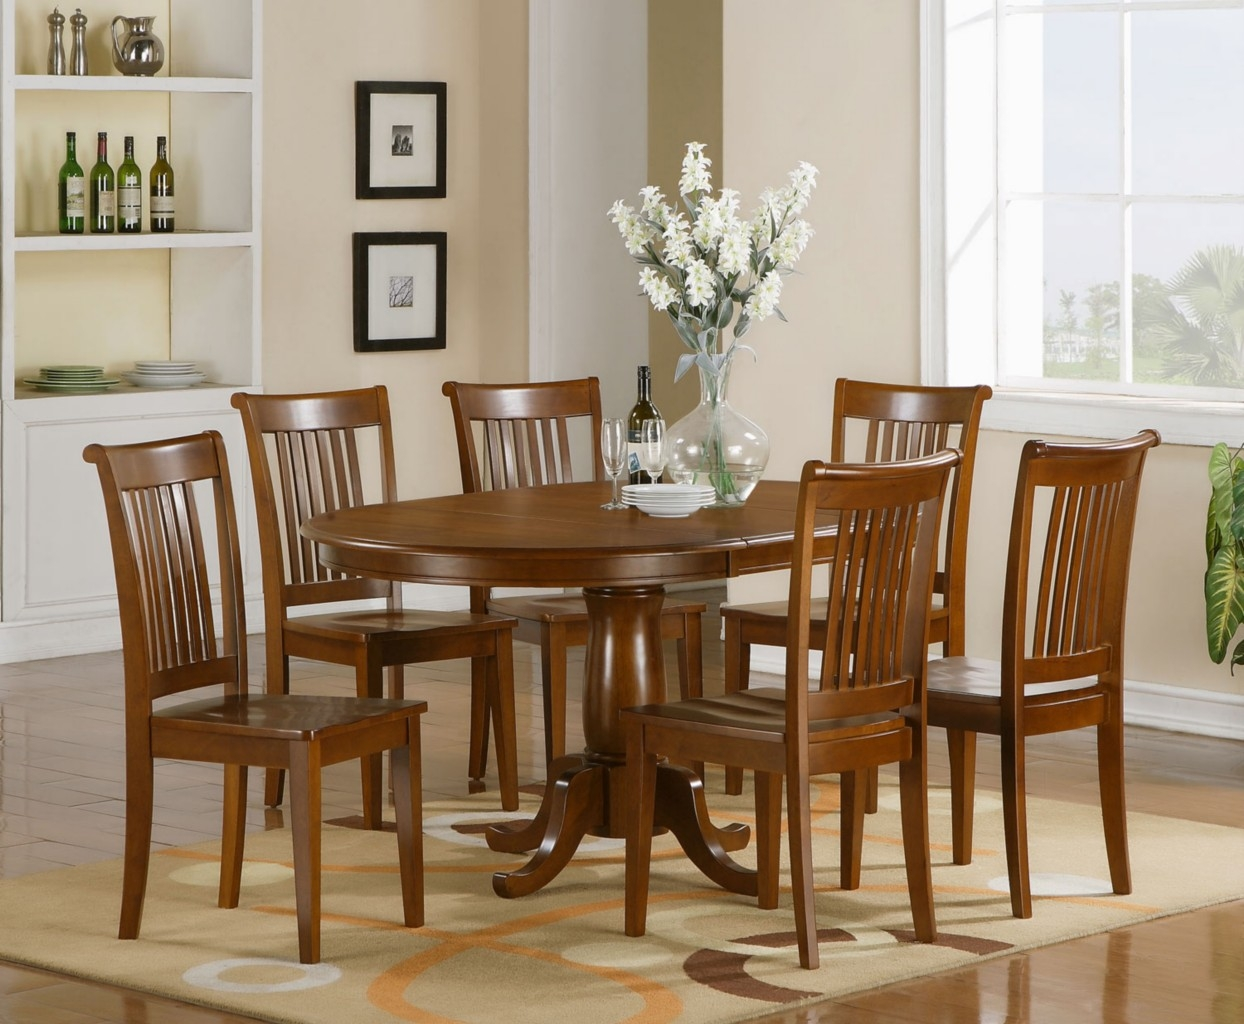 Kitchen Table Chairs Set Regarding Dining Room Chair Sets 9 Decor ...